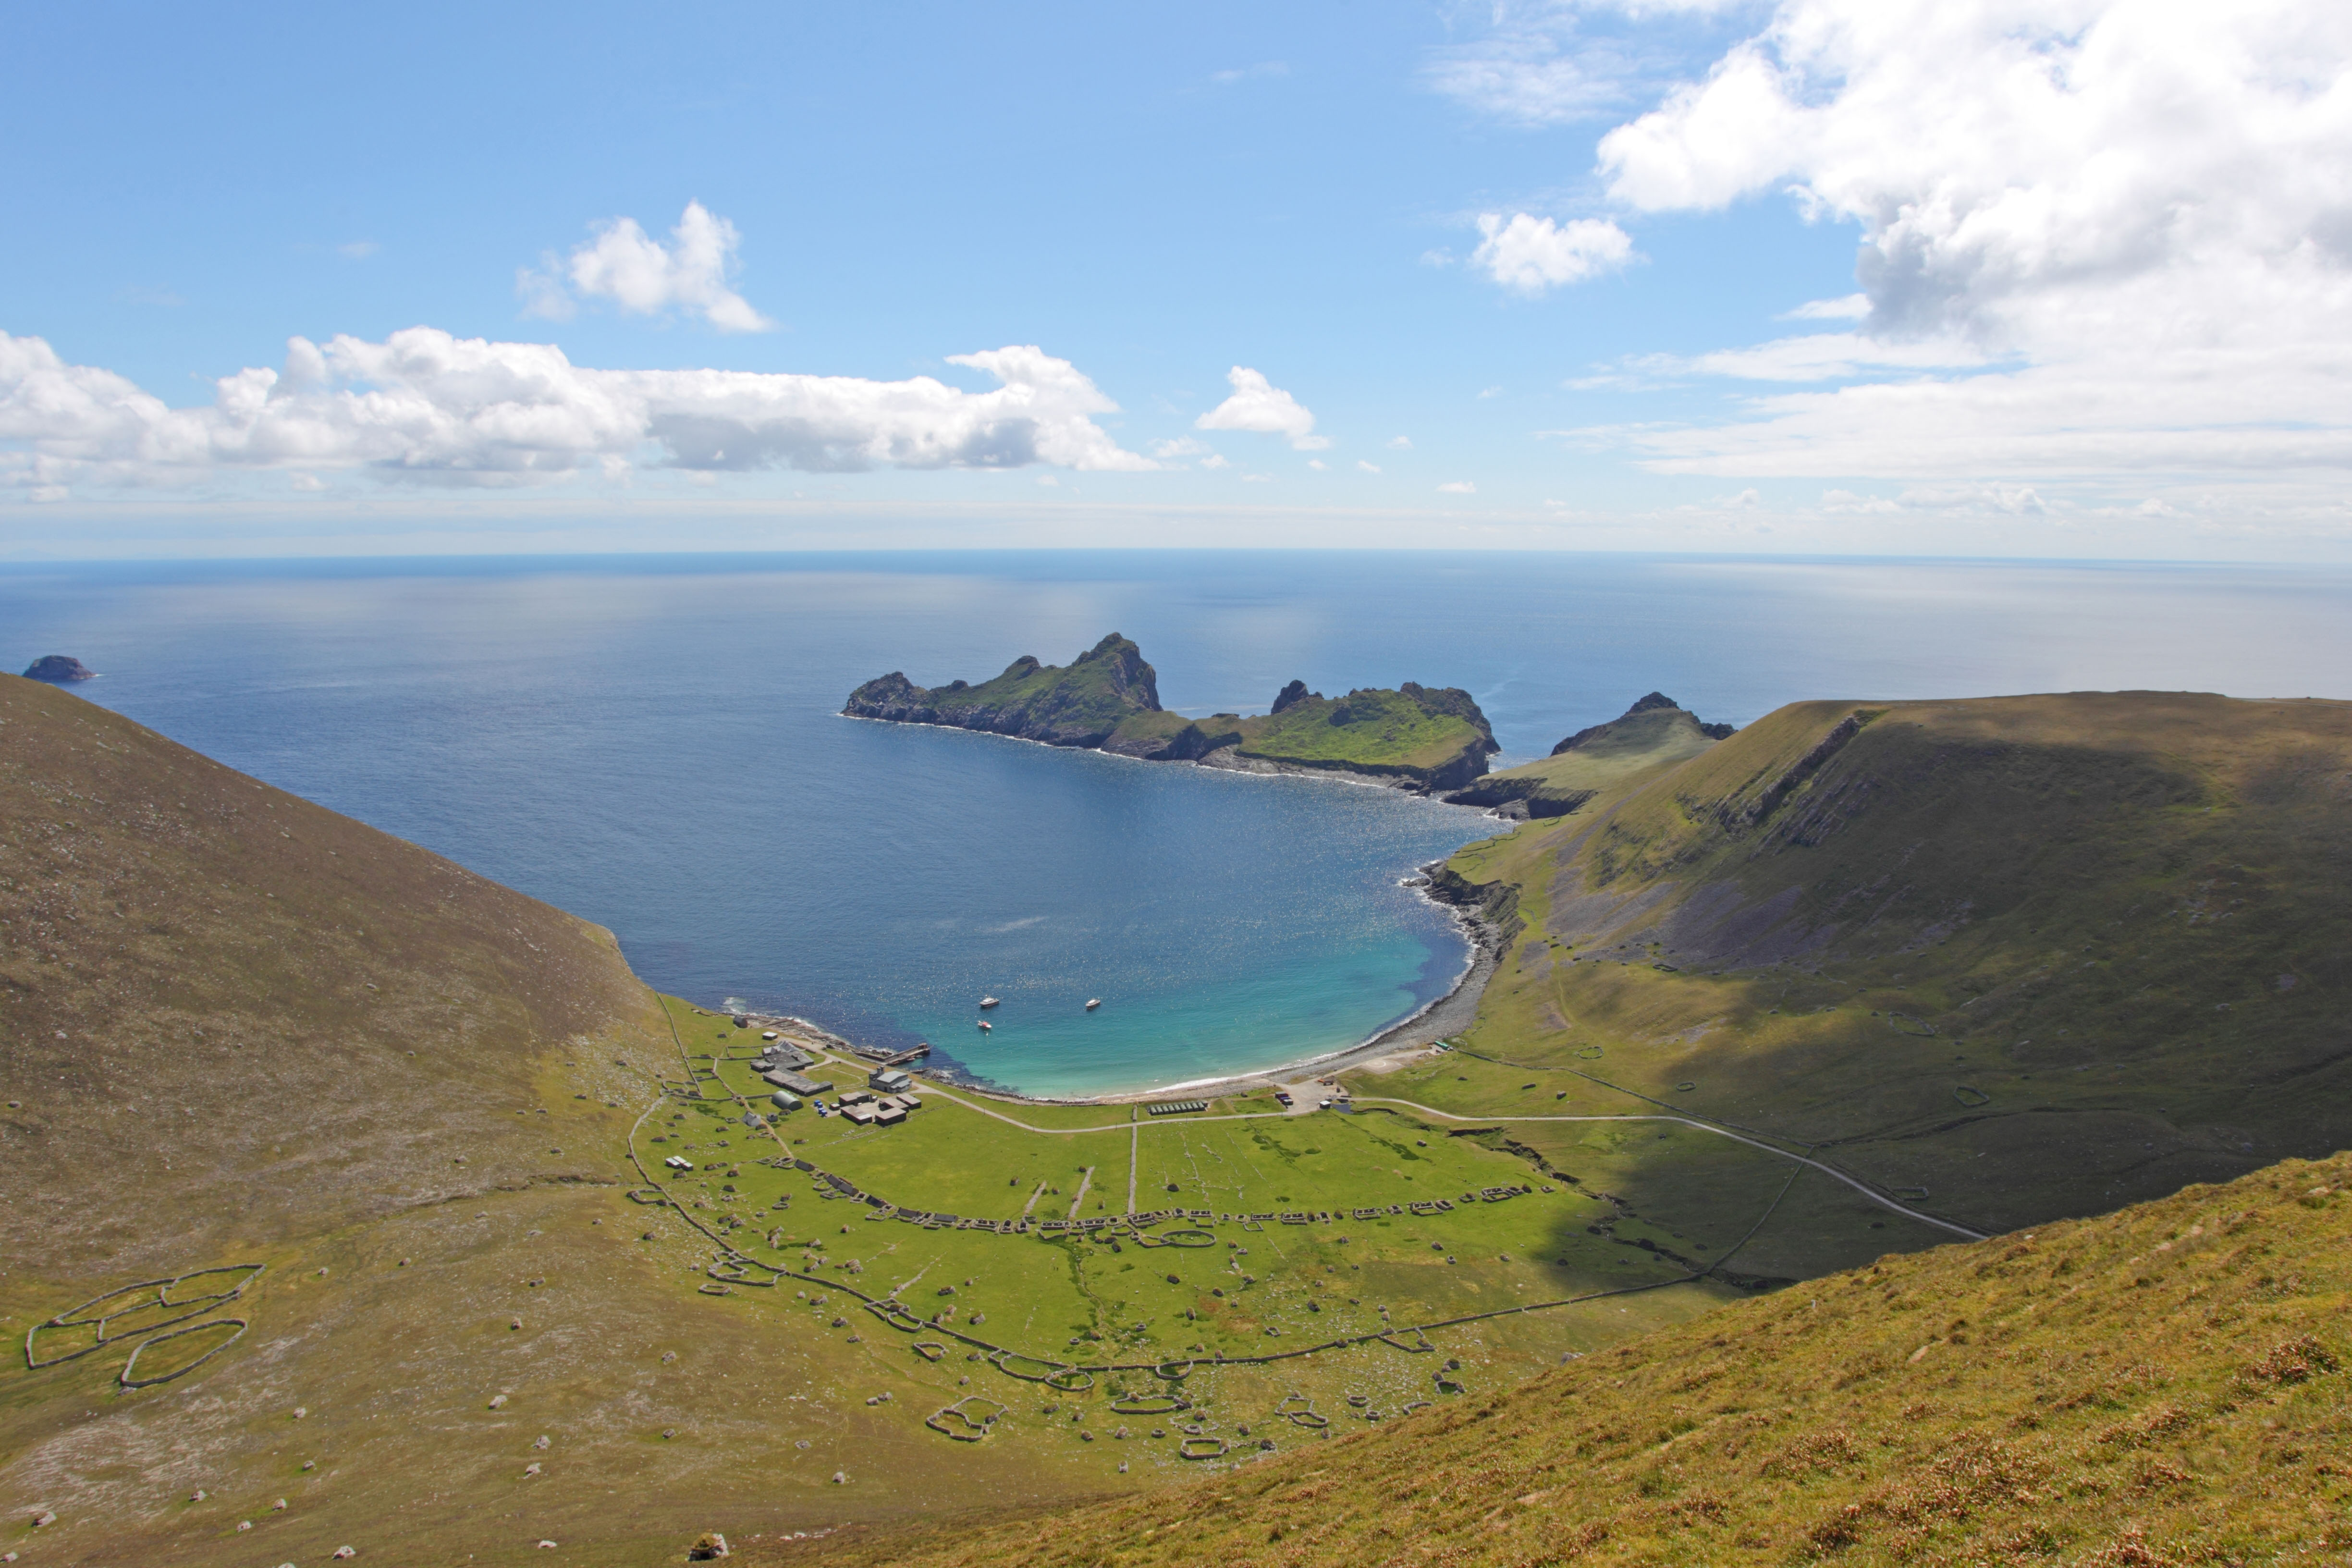 St Kilda: A Wildlife Cruise to the Outer Hebridesimage